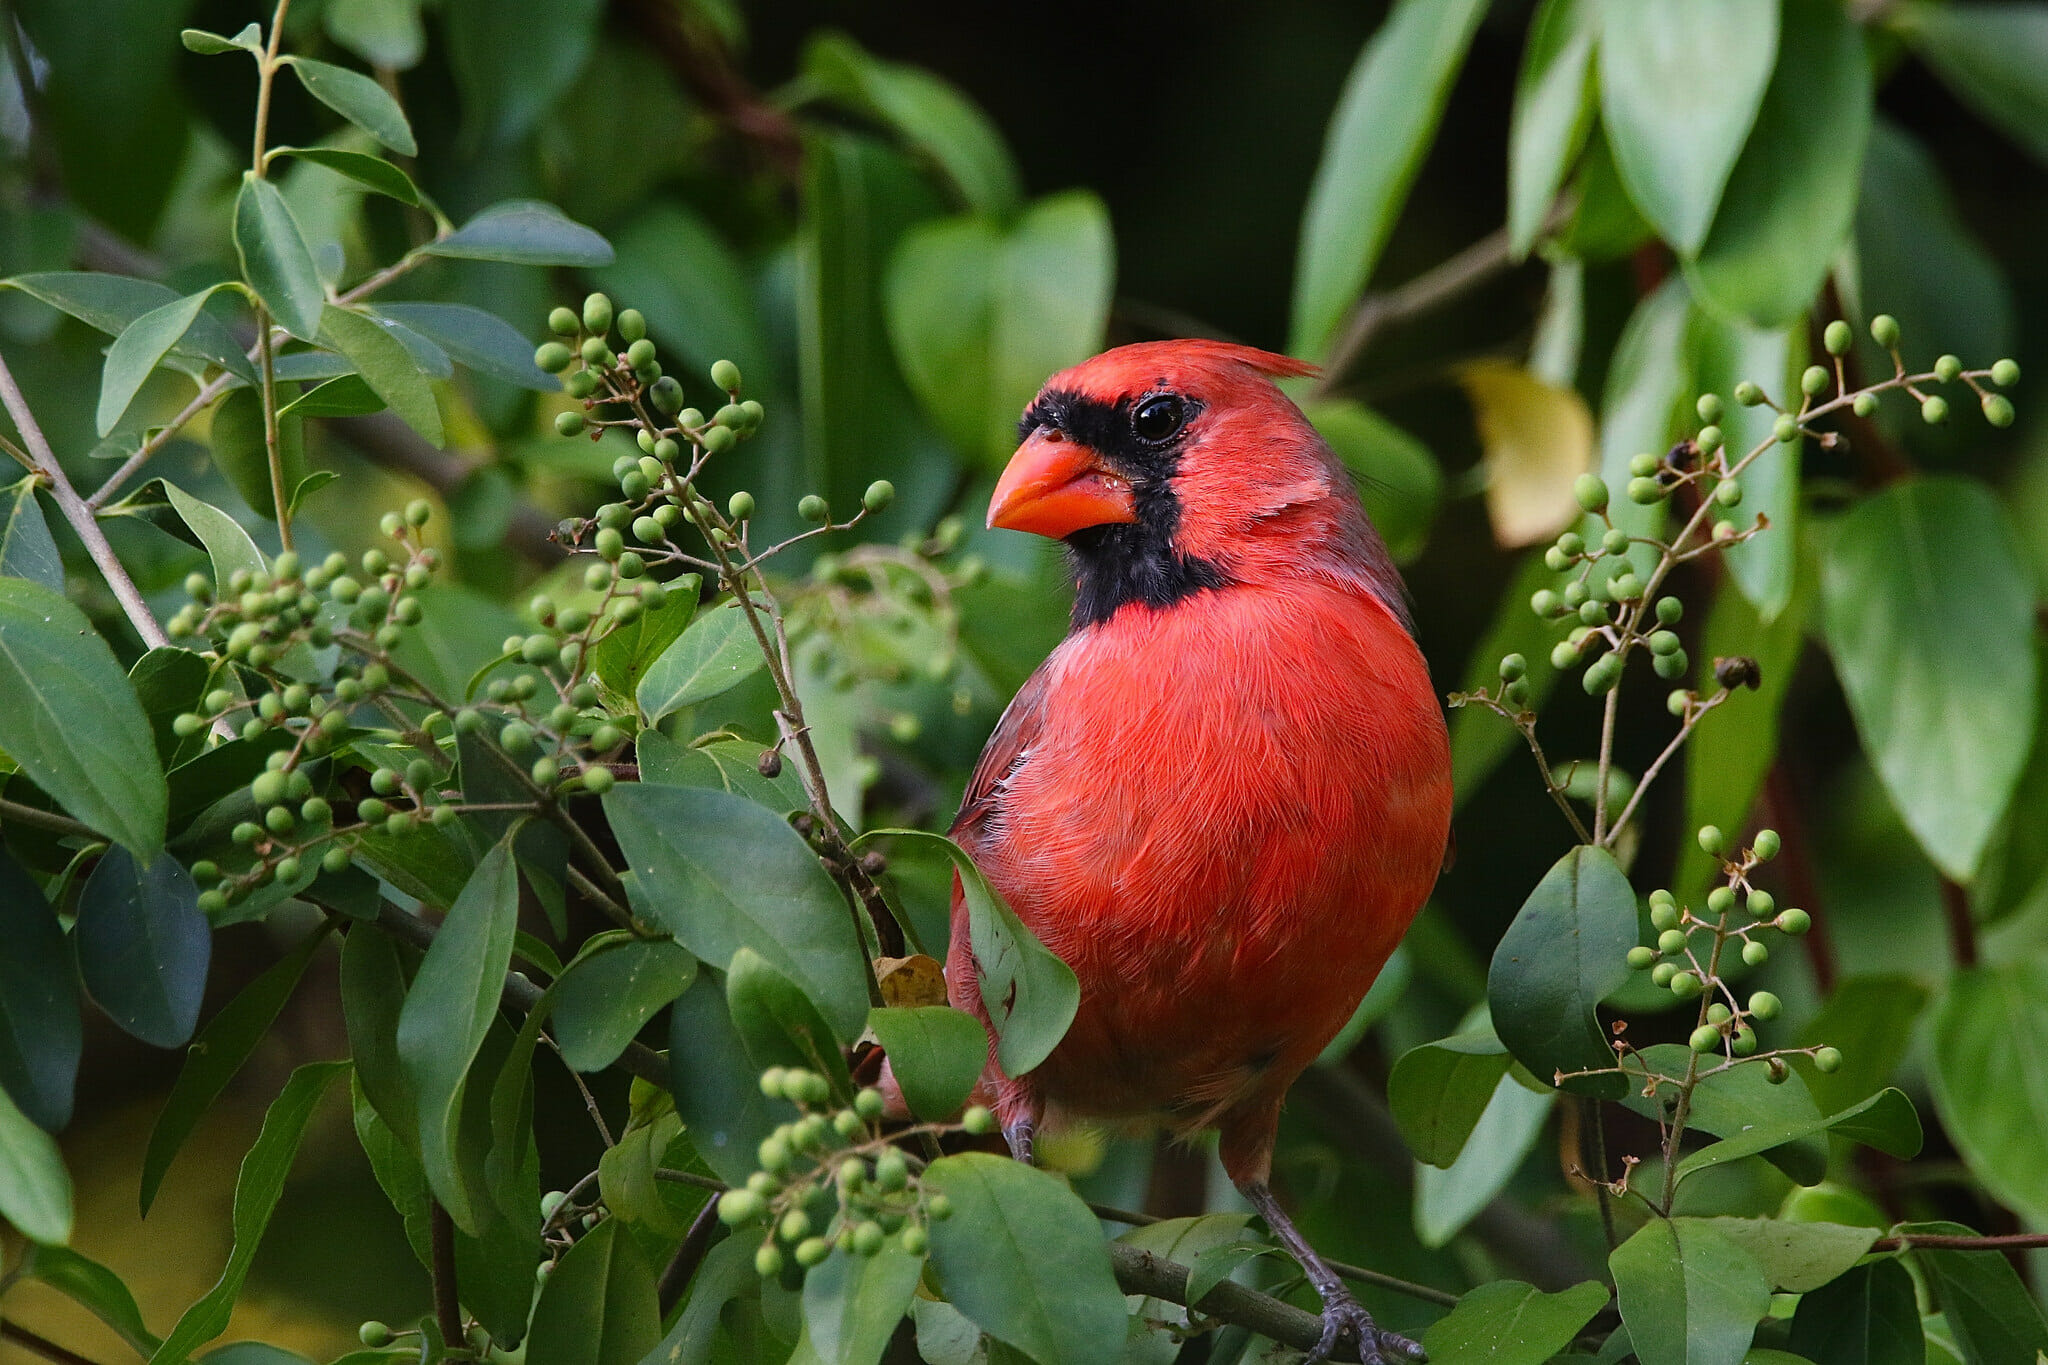 how many states have the cardinal as the state bird